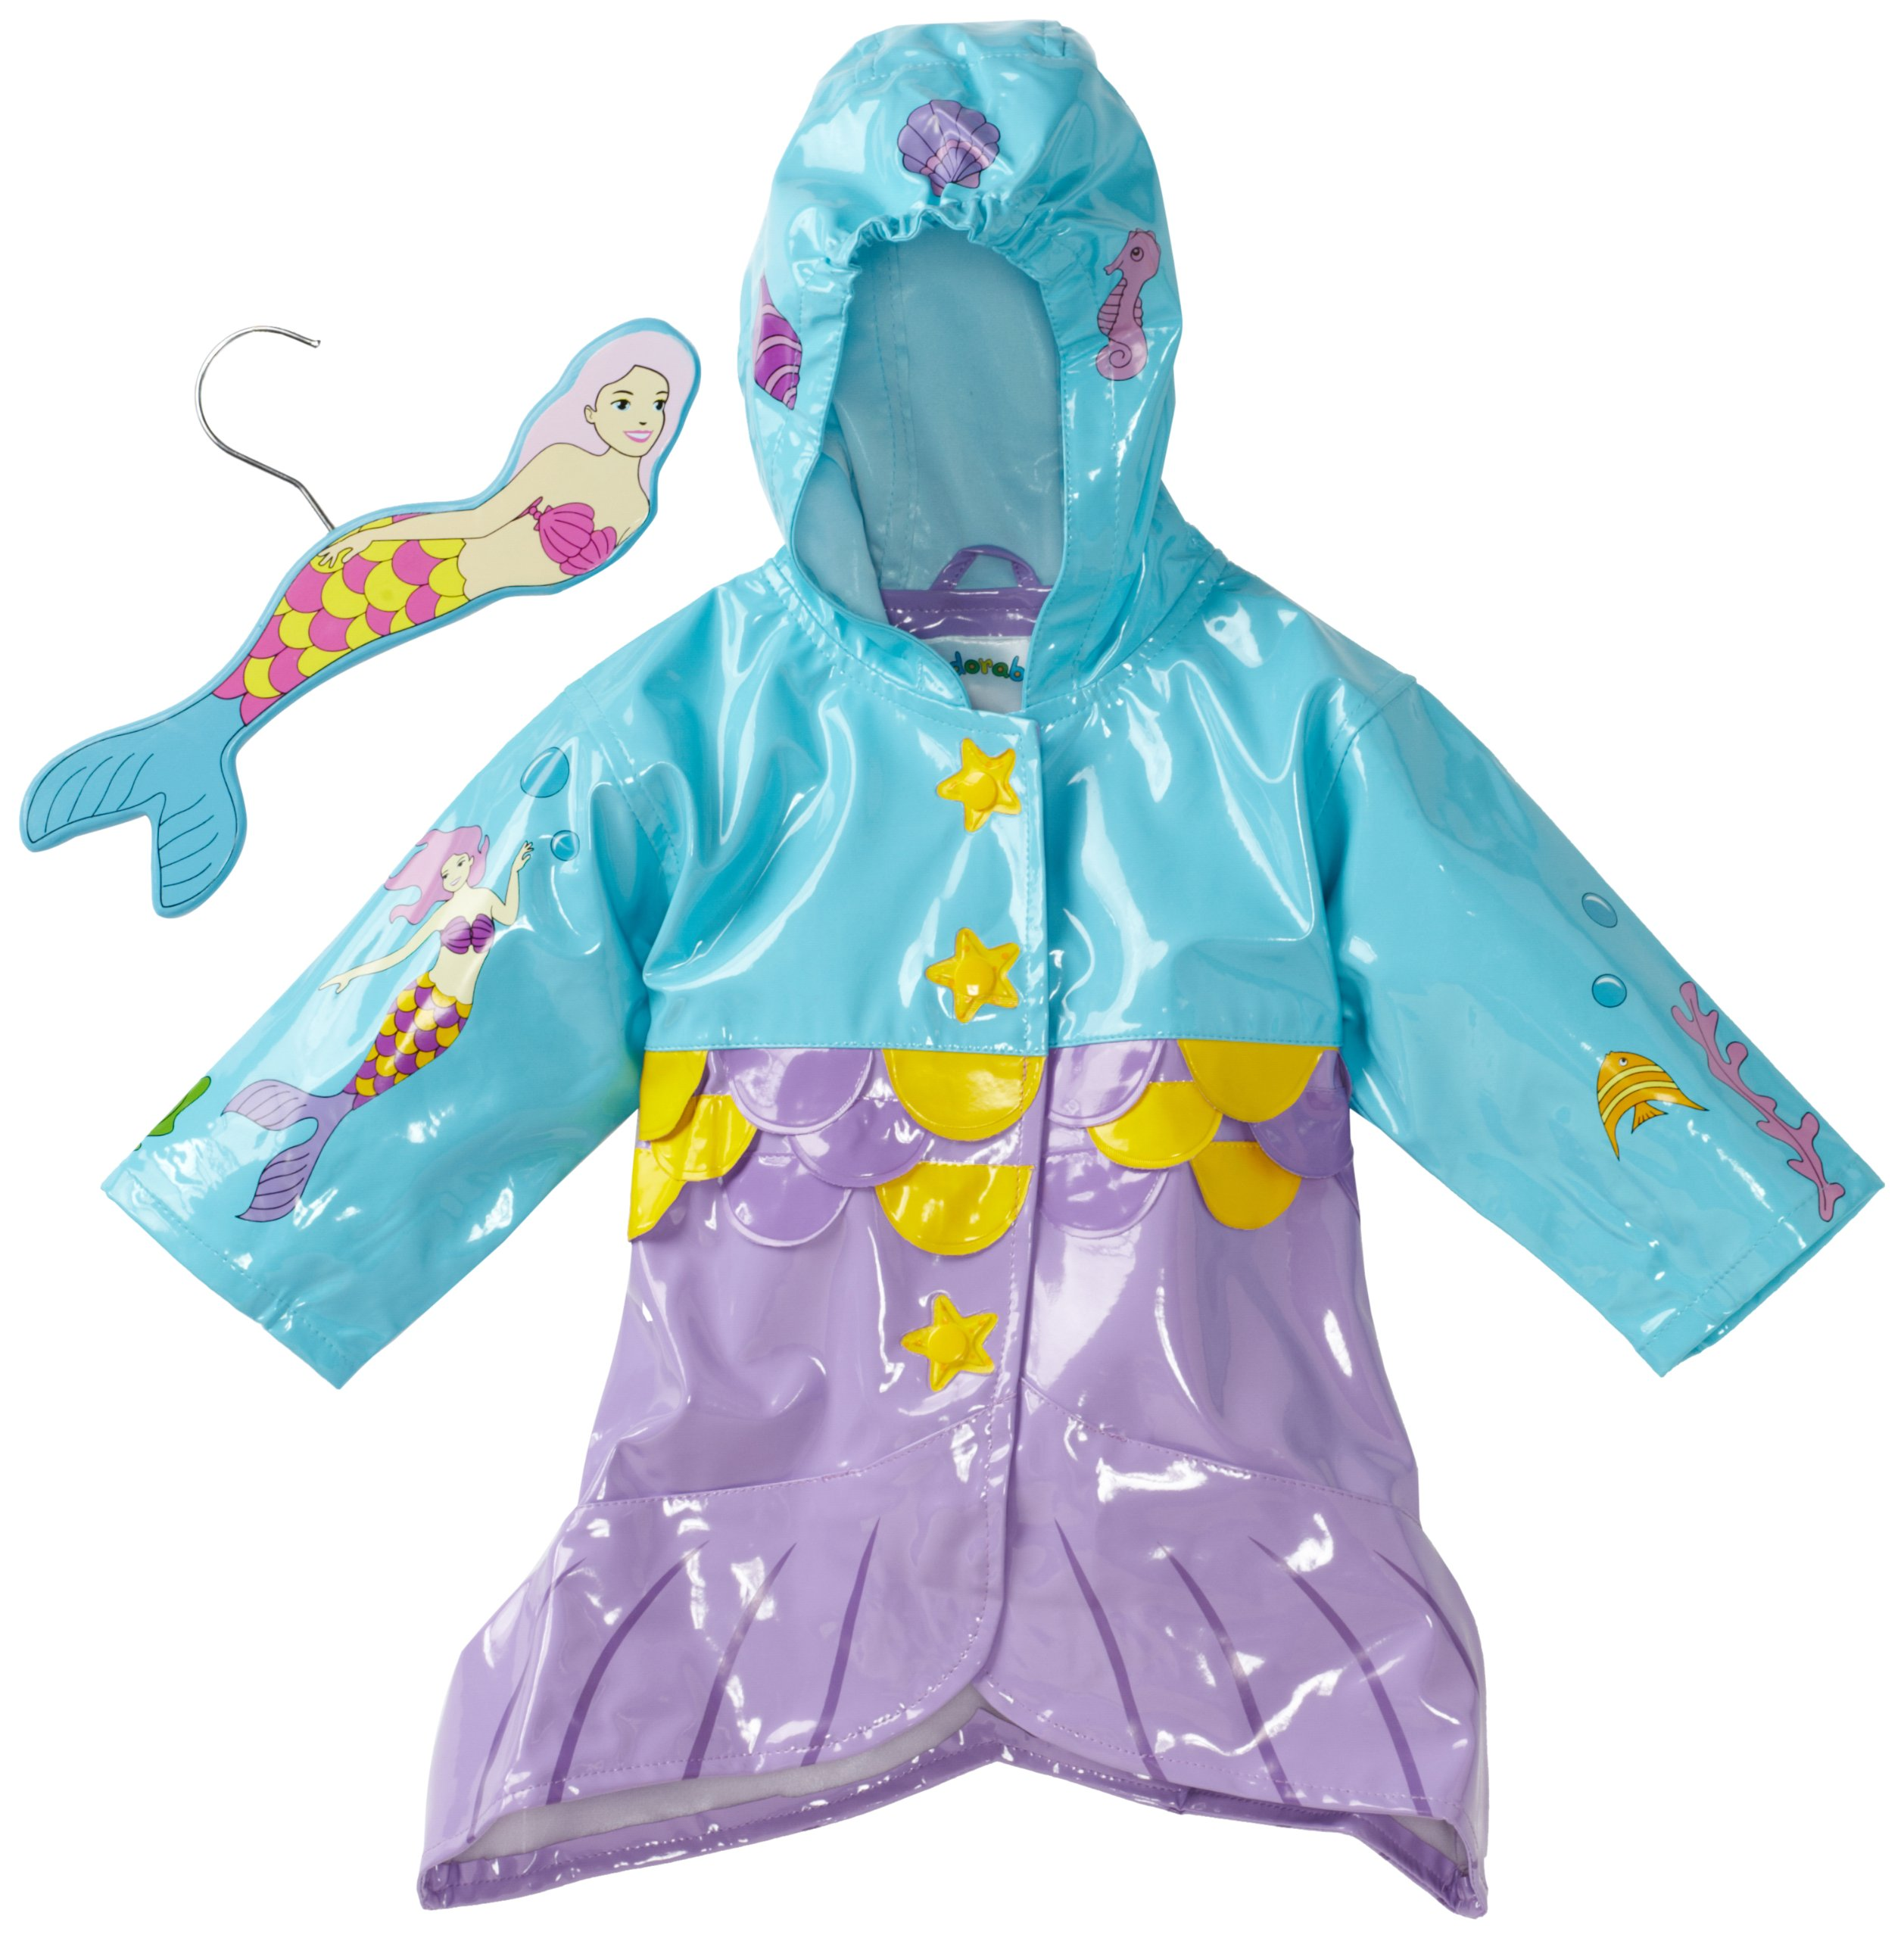 Kidorable Mermaid Raincoat, Aqua Blue, 12 18M by Kidorable